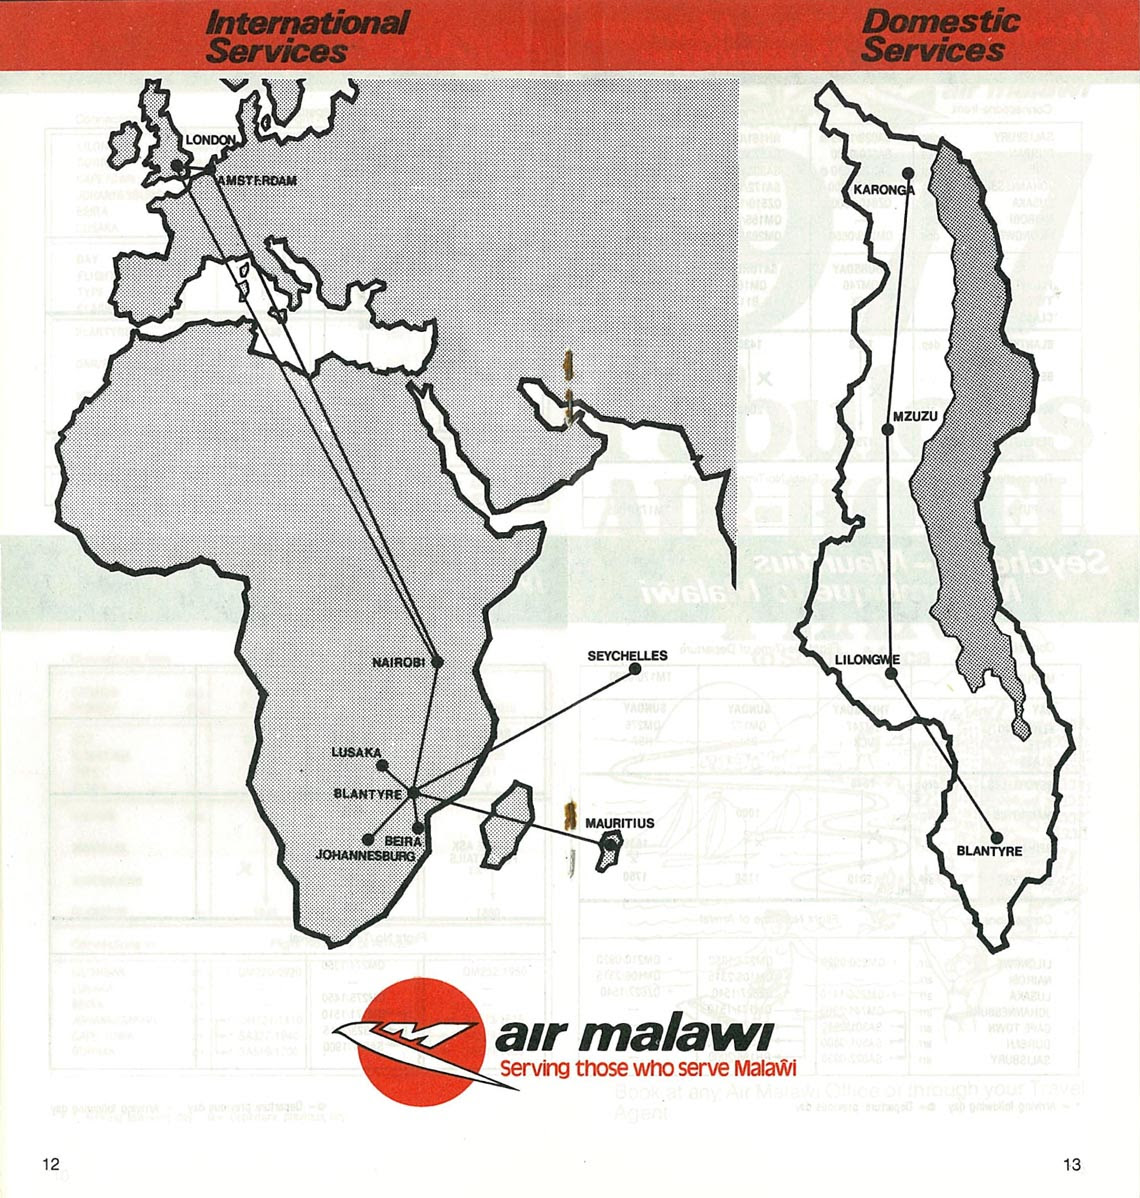 Air Malawi's once prolific network